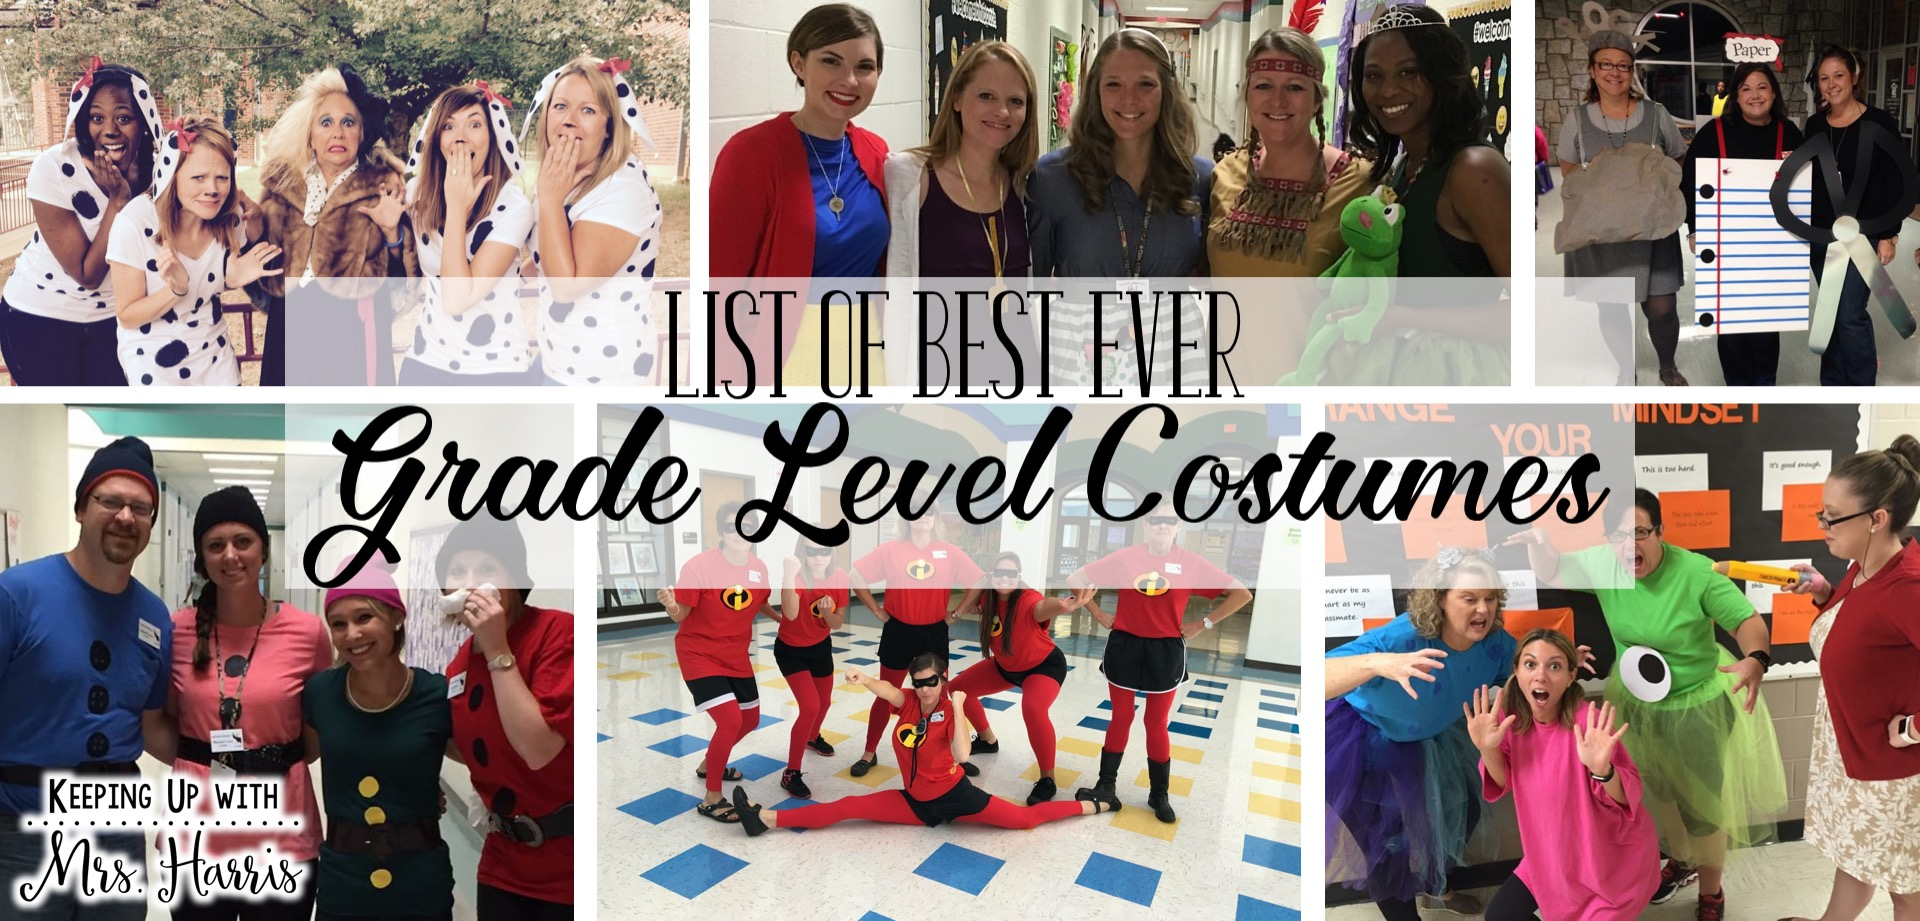 The Best Ever Grade Level Costumes For Teachers The Tpt Blog